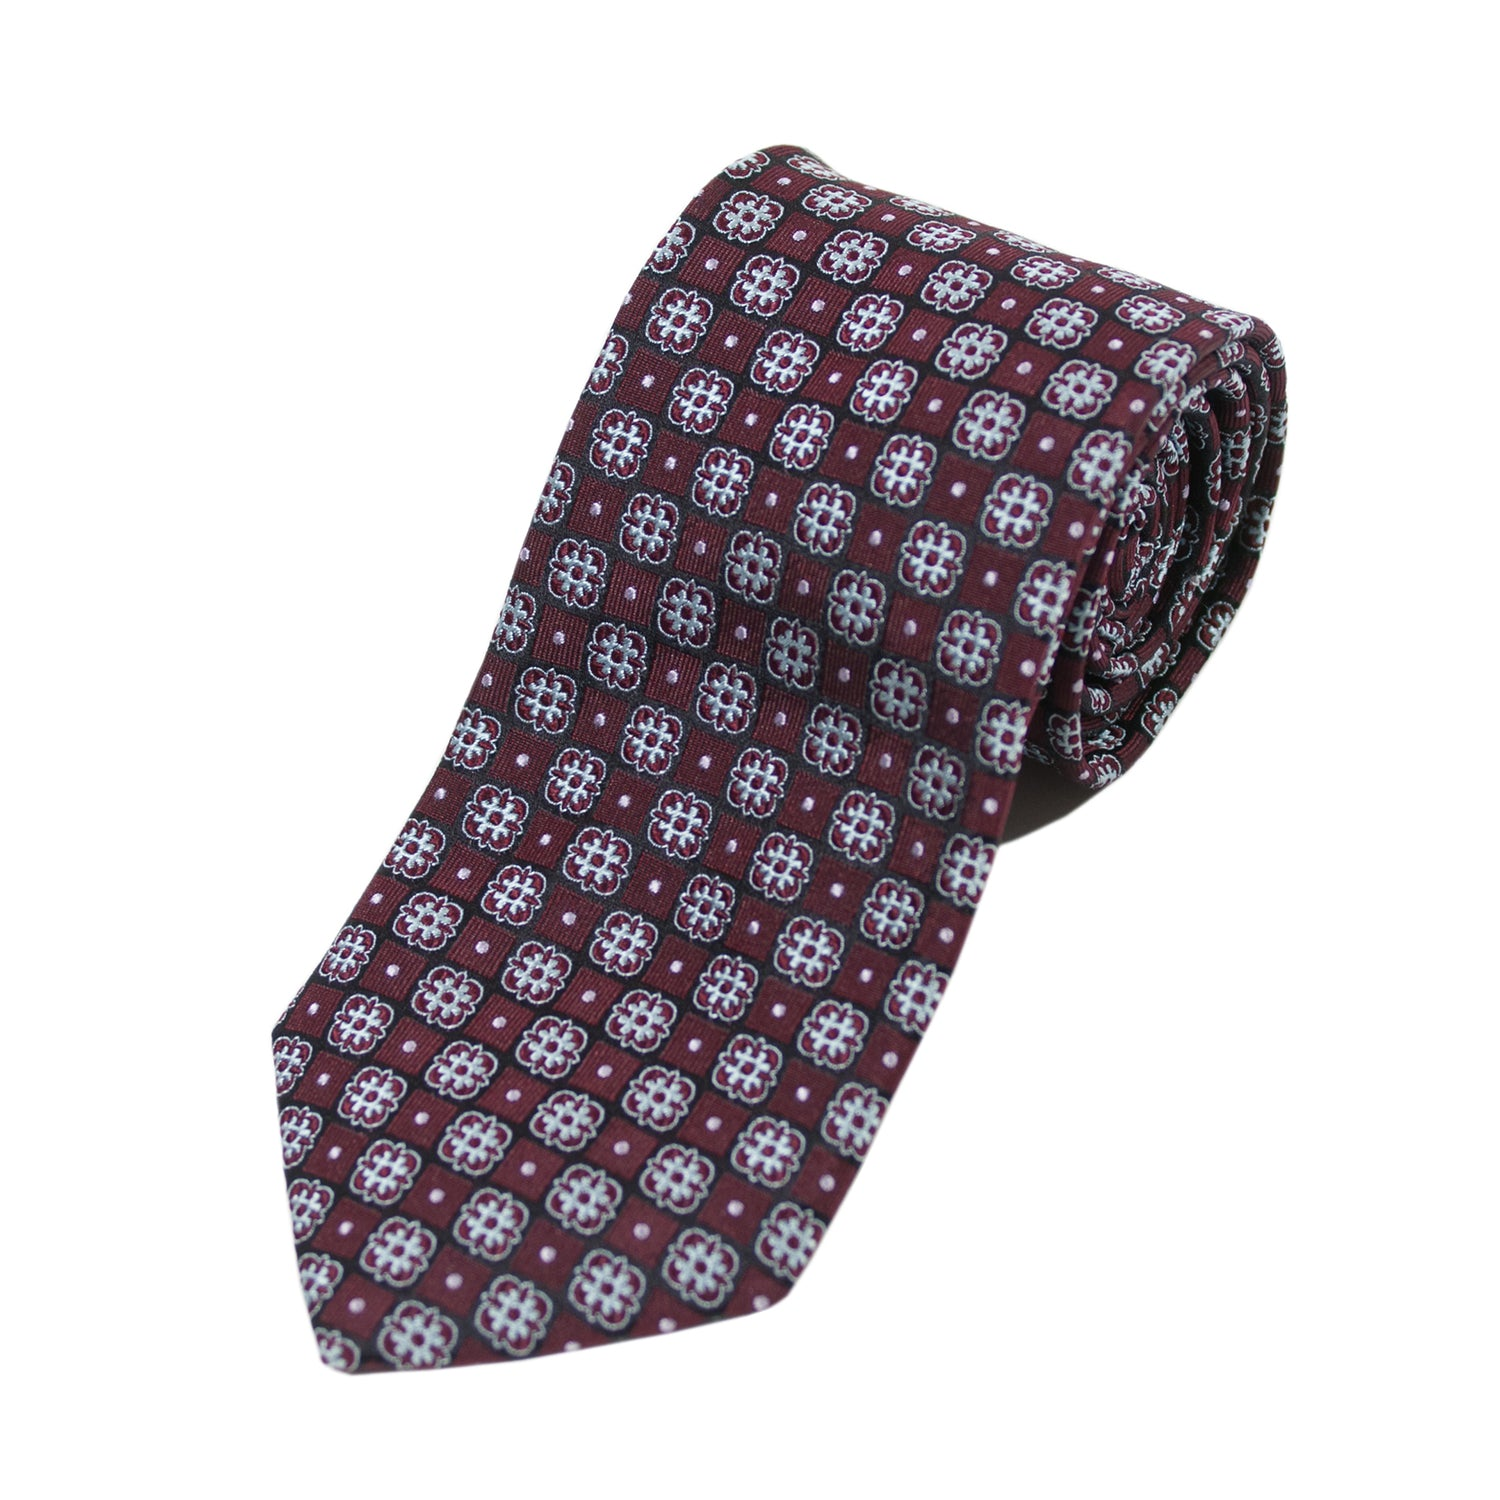 Braemore Burgundy Patterned Silk Tie